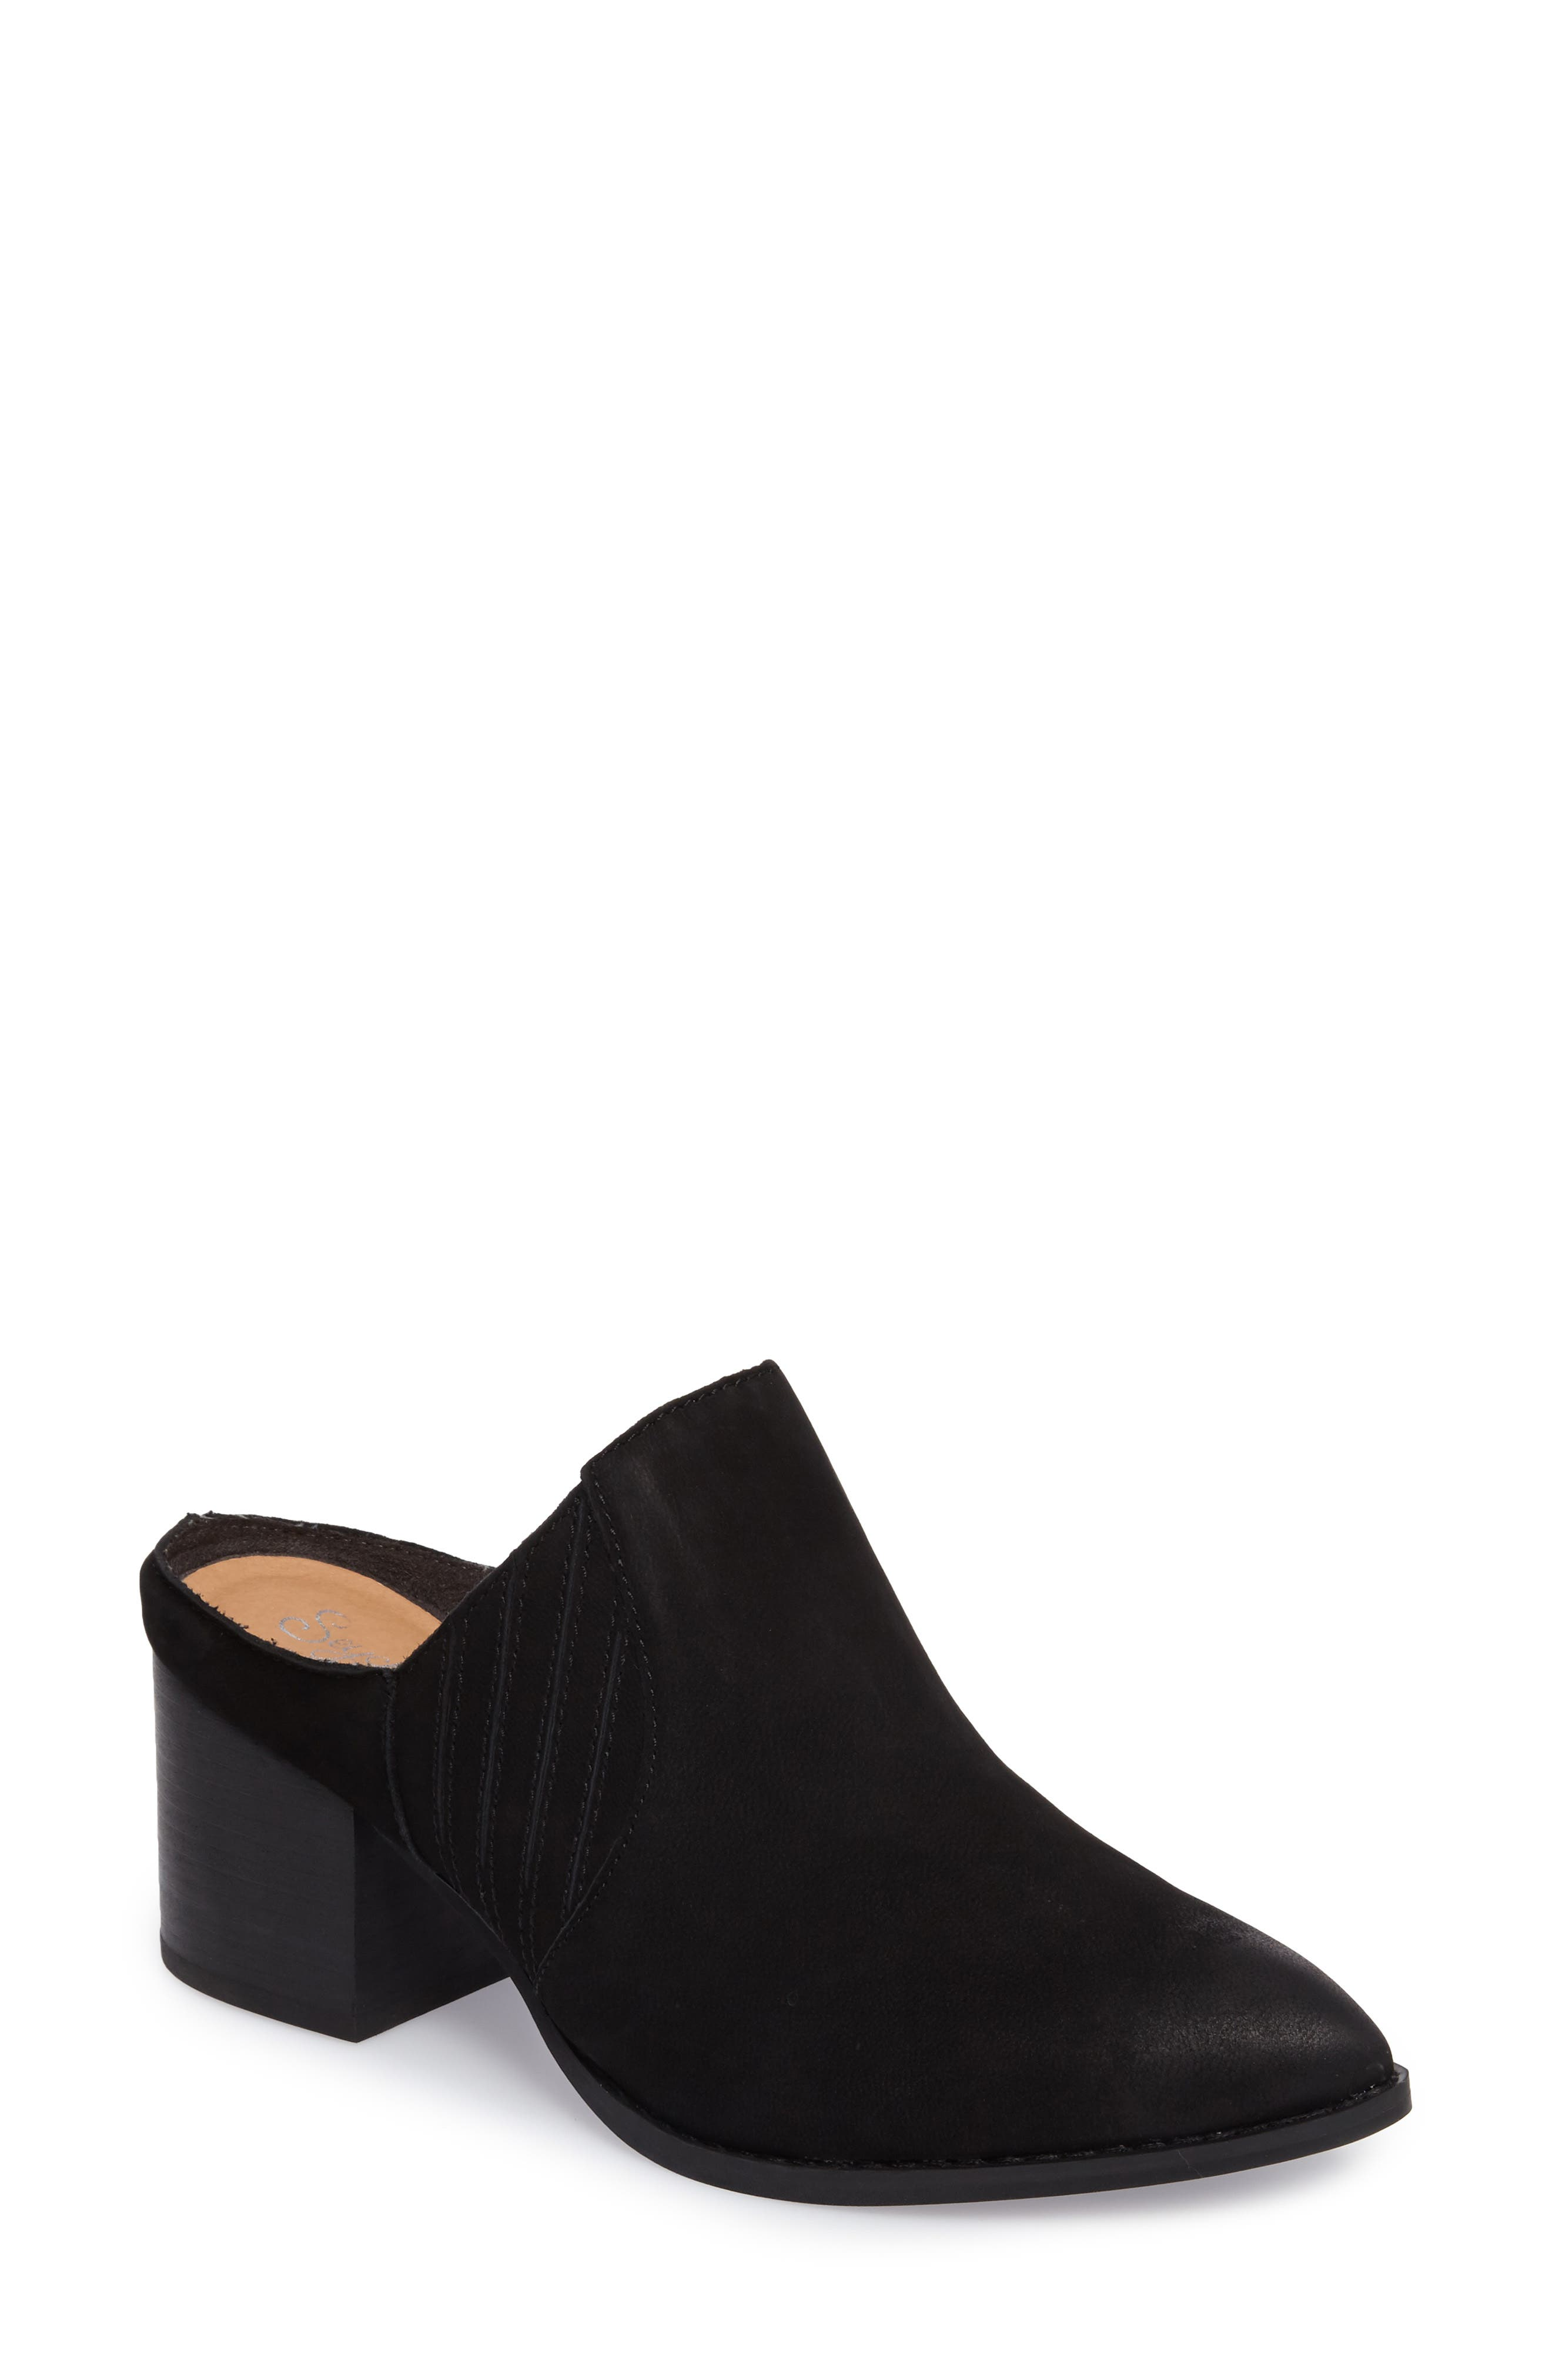 Dialogue Pointy Toe Mule,                         Main,                         color,